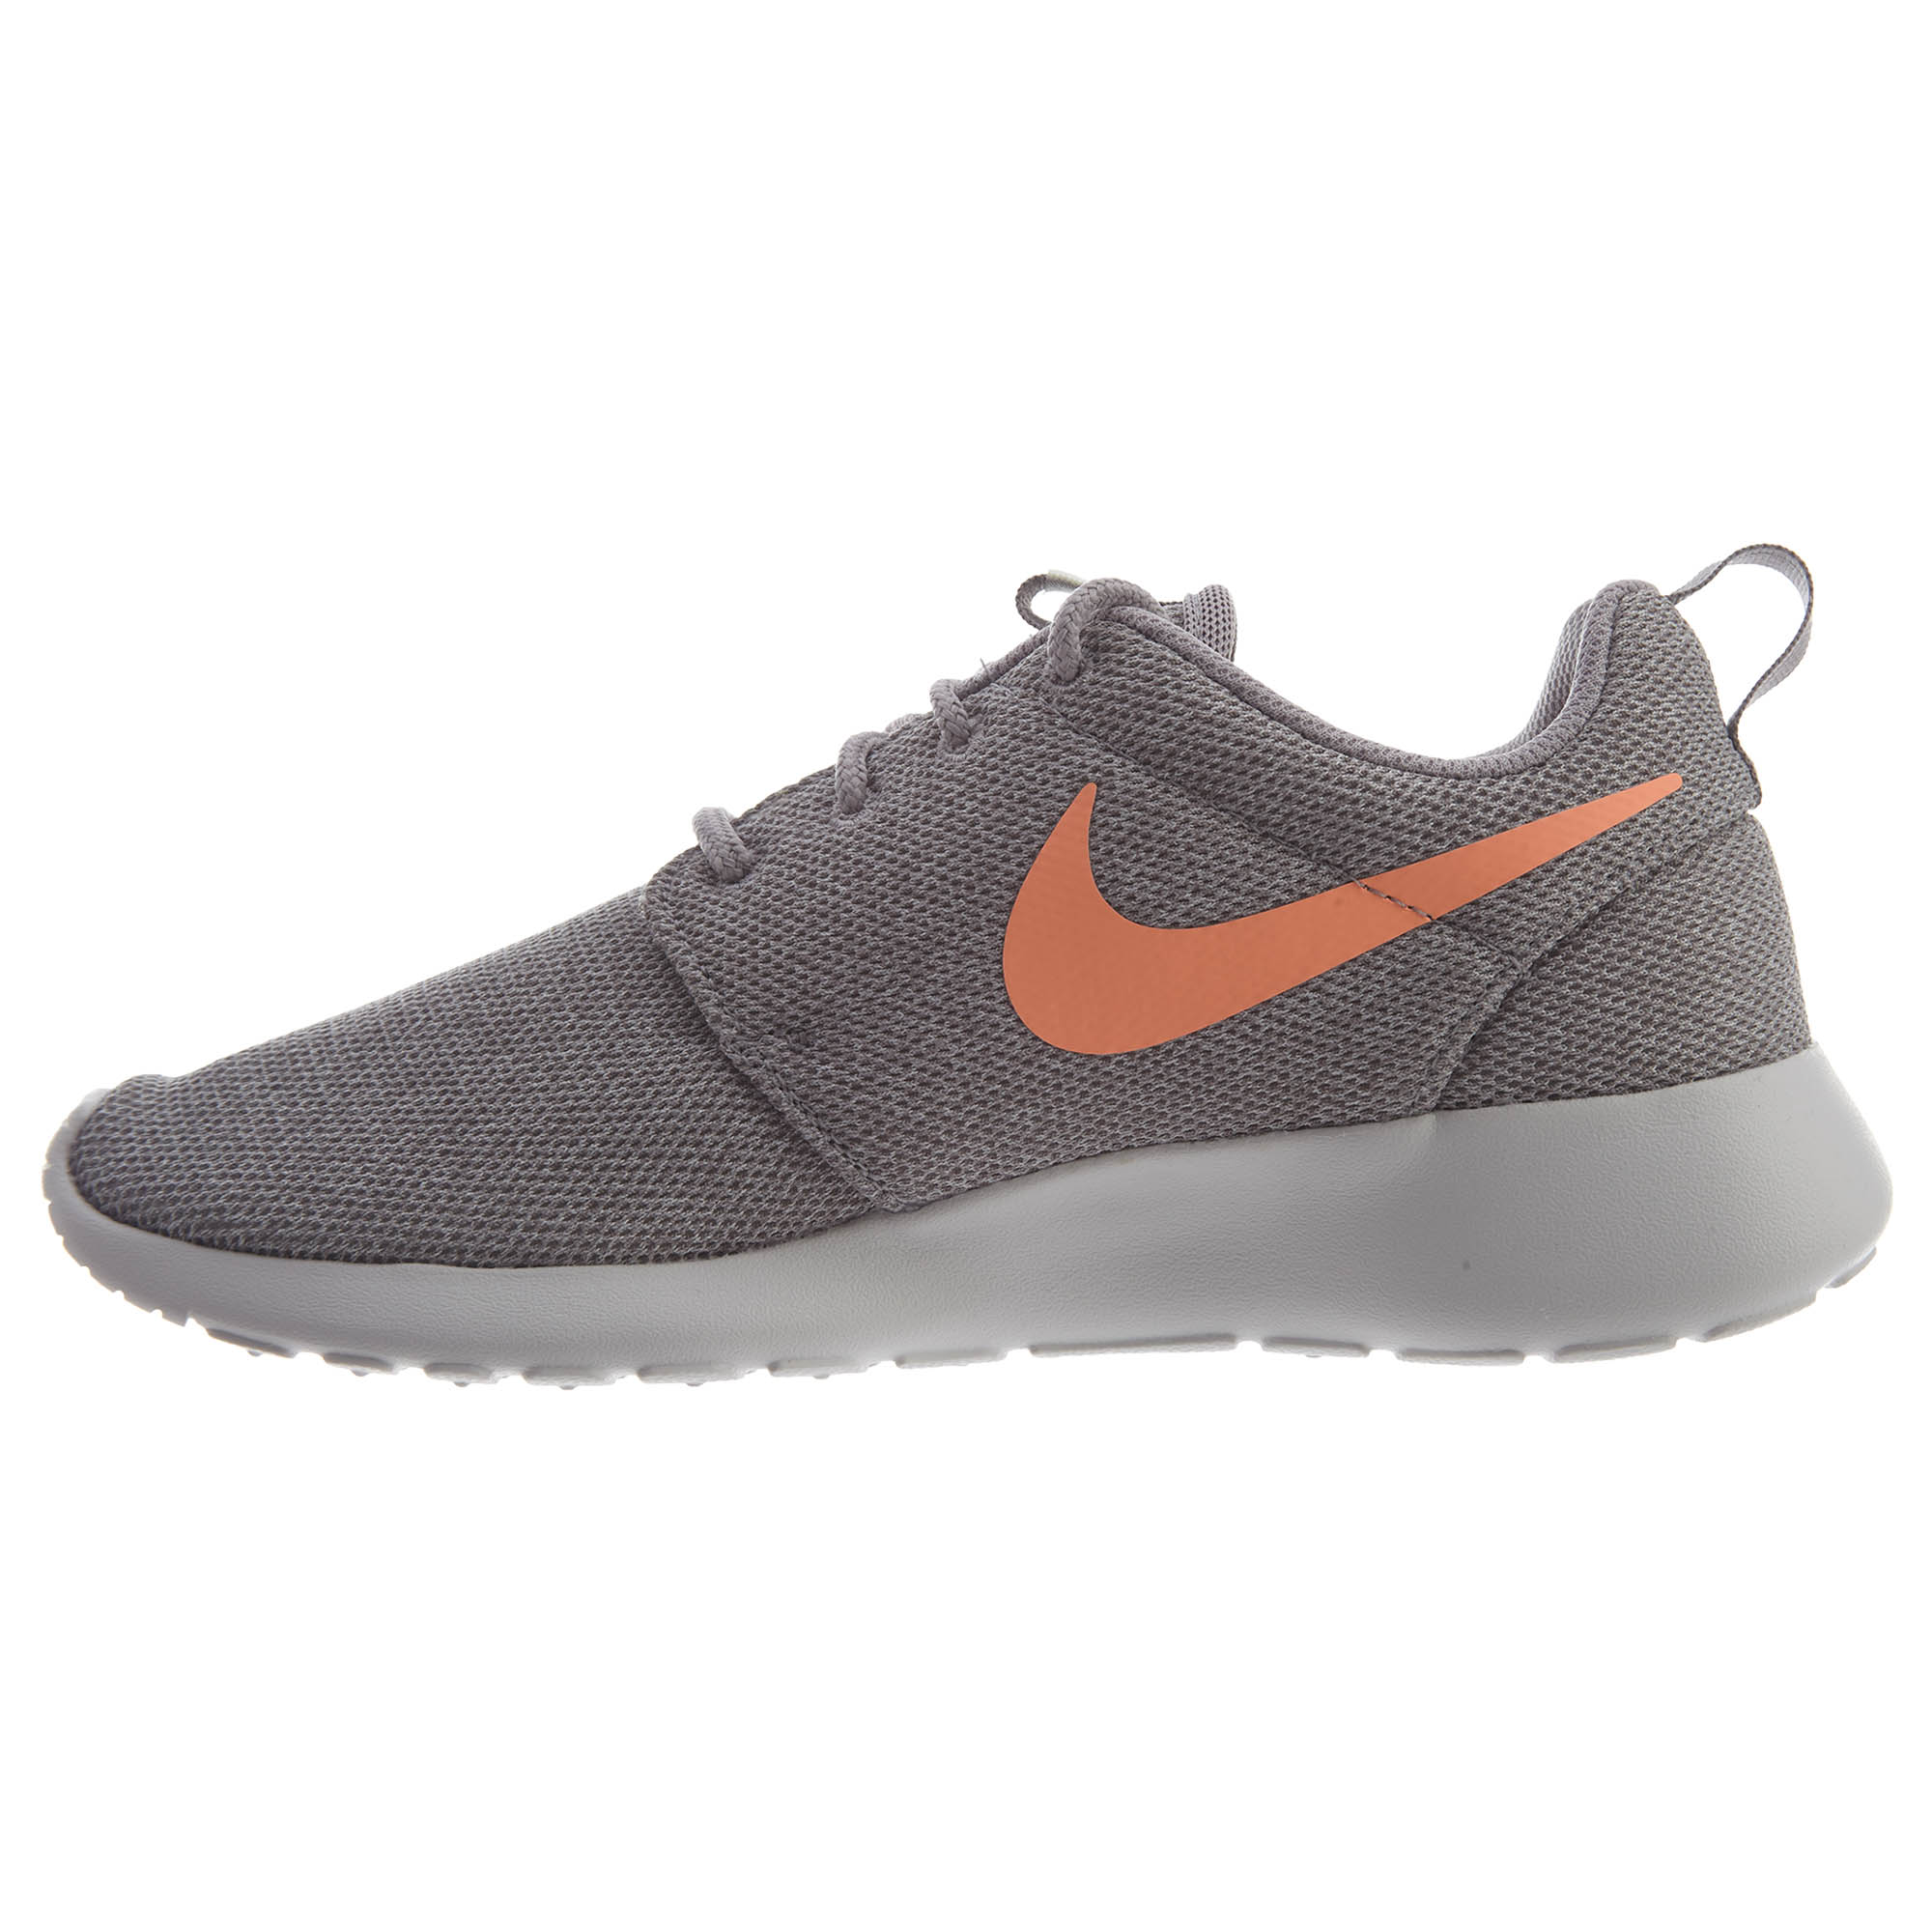 Details about Nike Womens Roshe One Running Shoes 844994-010 a7fc461ef1